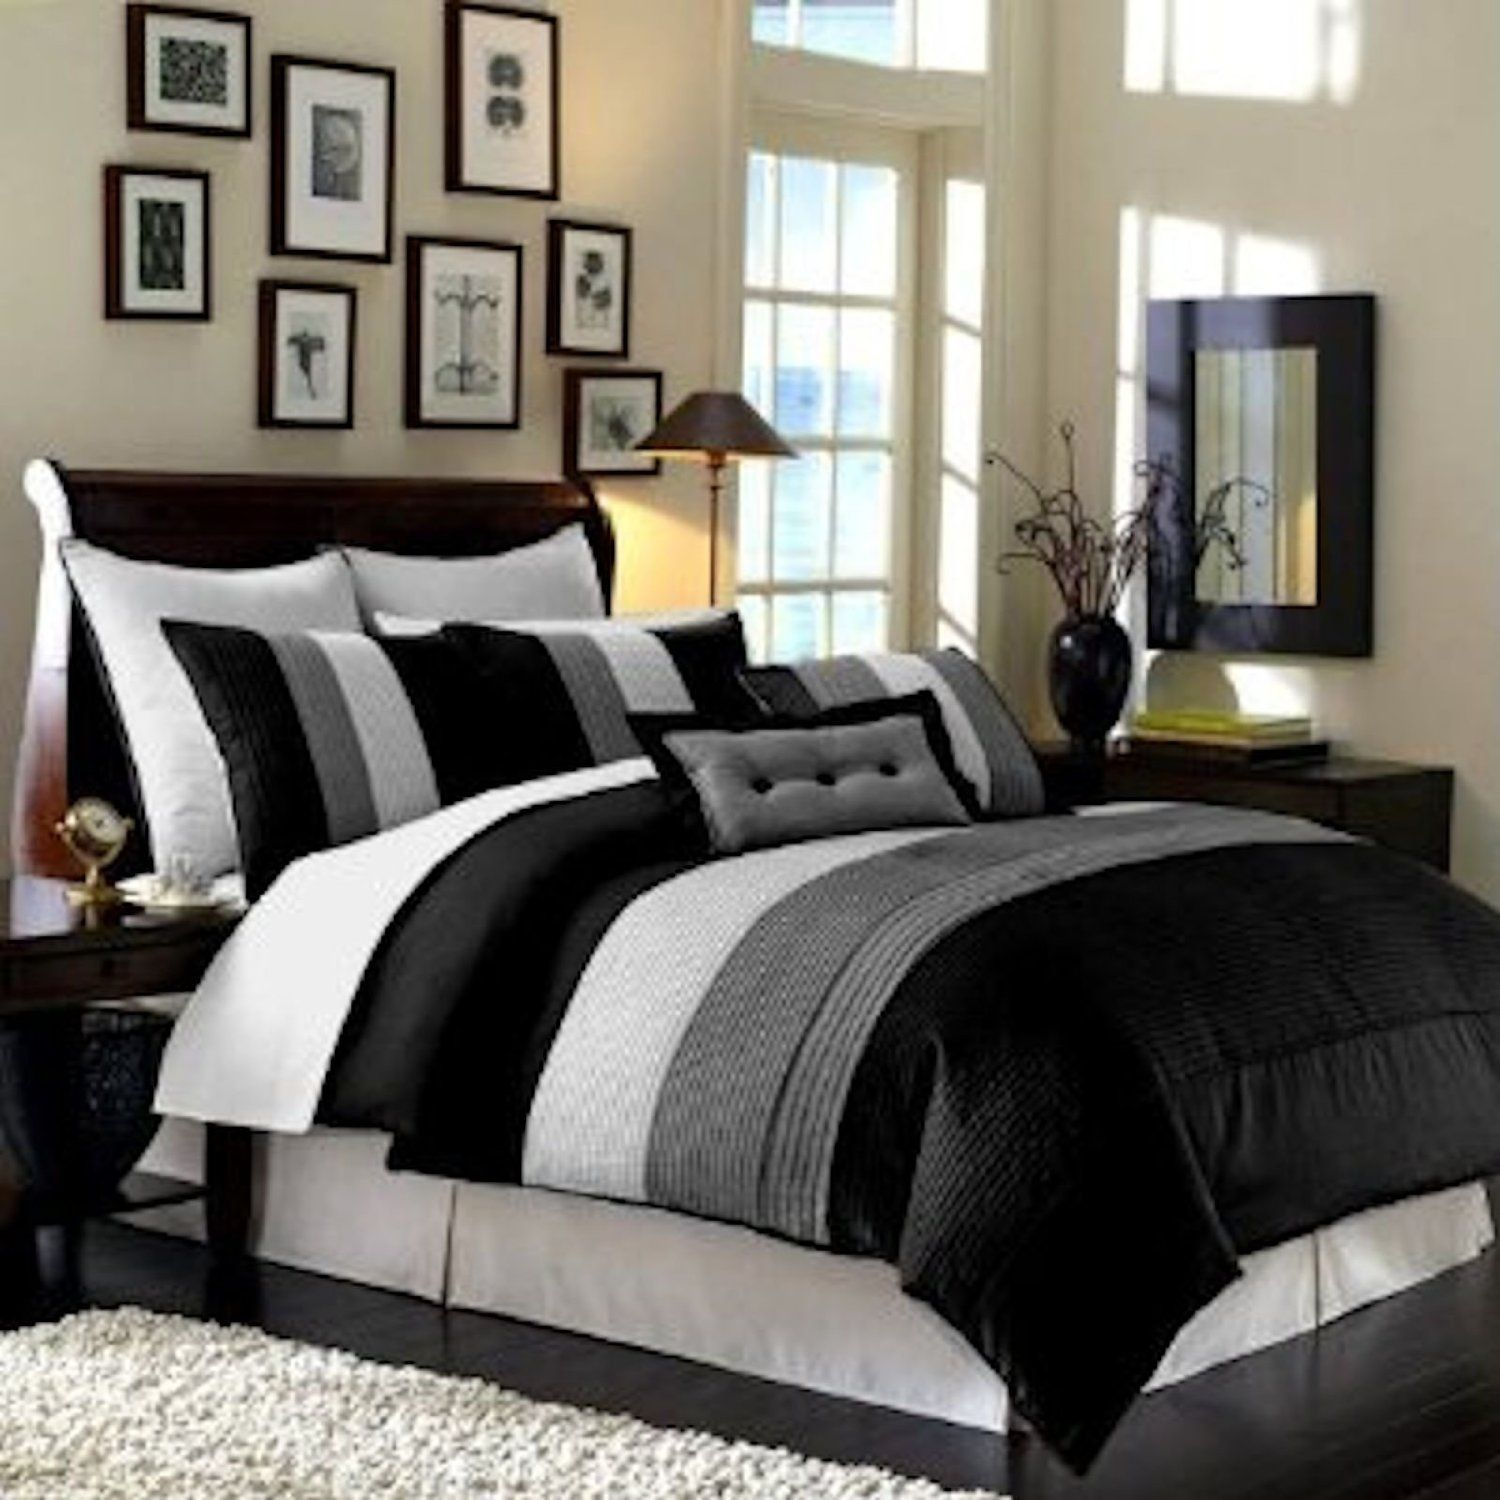 Bedroom : White Bed Sets Cool Beds For Teens Bunk Beds For ...